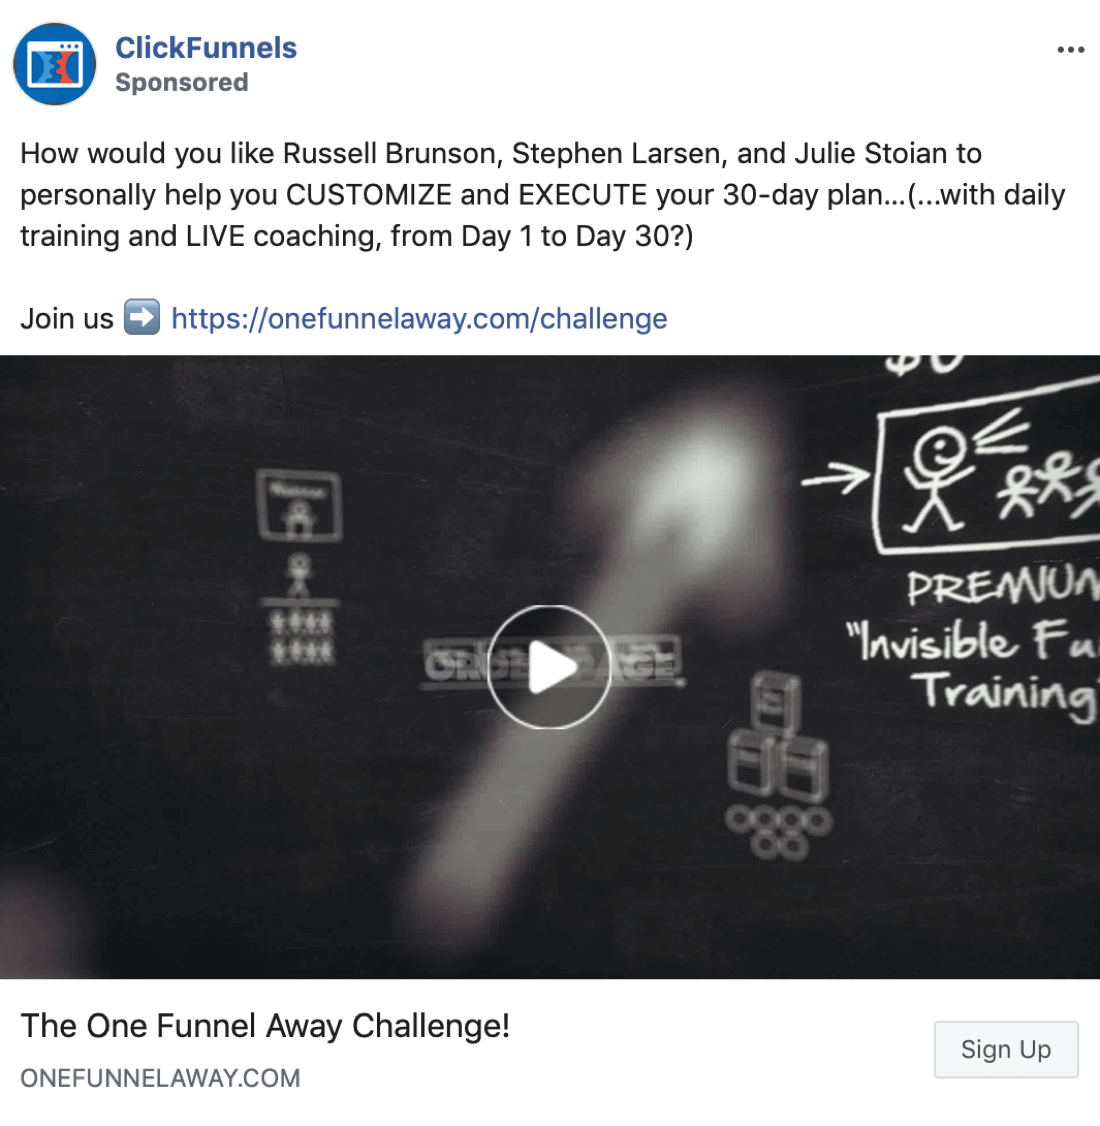 Facebook ad copy using an included URL, example 1.